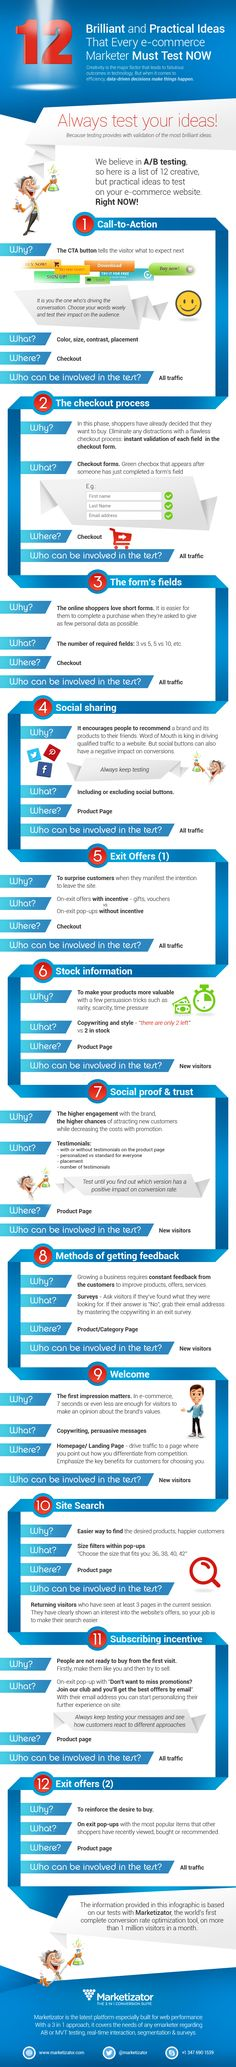 12 Jaw Dropping Ideas to Test on E commerce Websites [Infographic] | via #BornToBeSocial - Pinterest Marketing